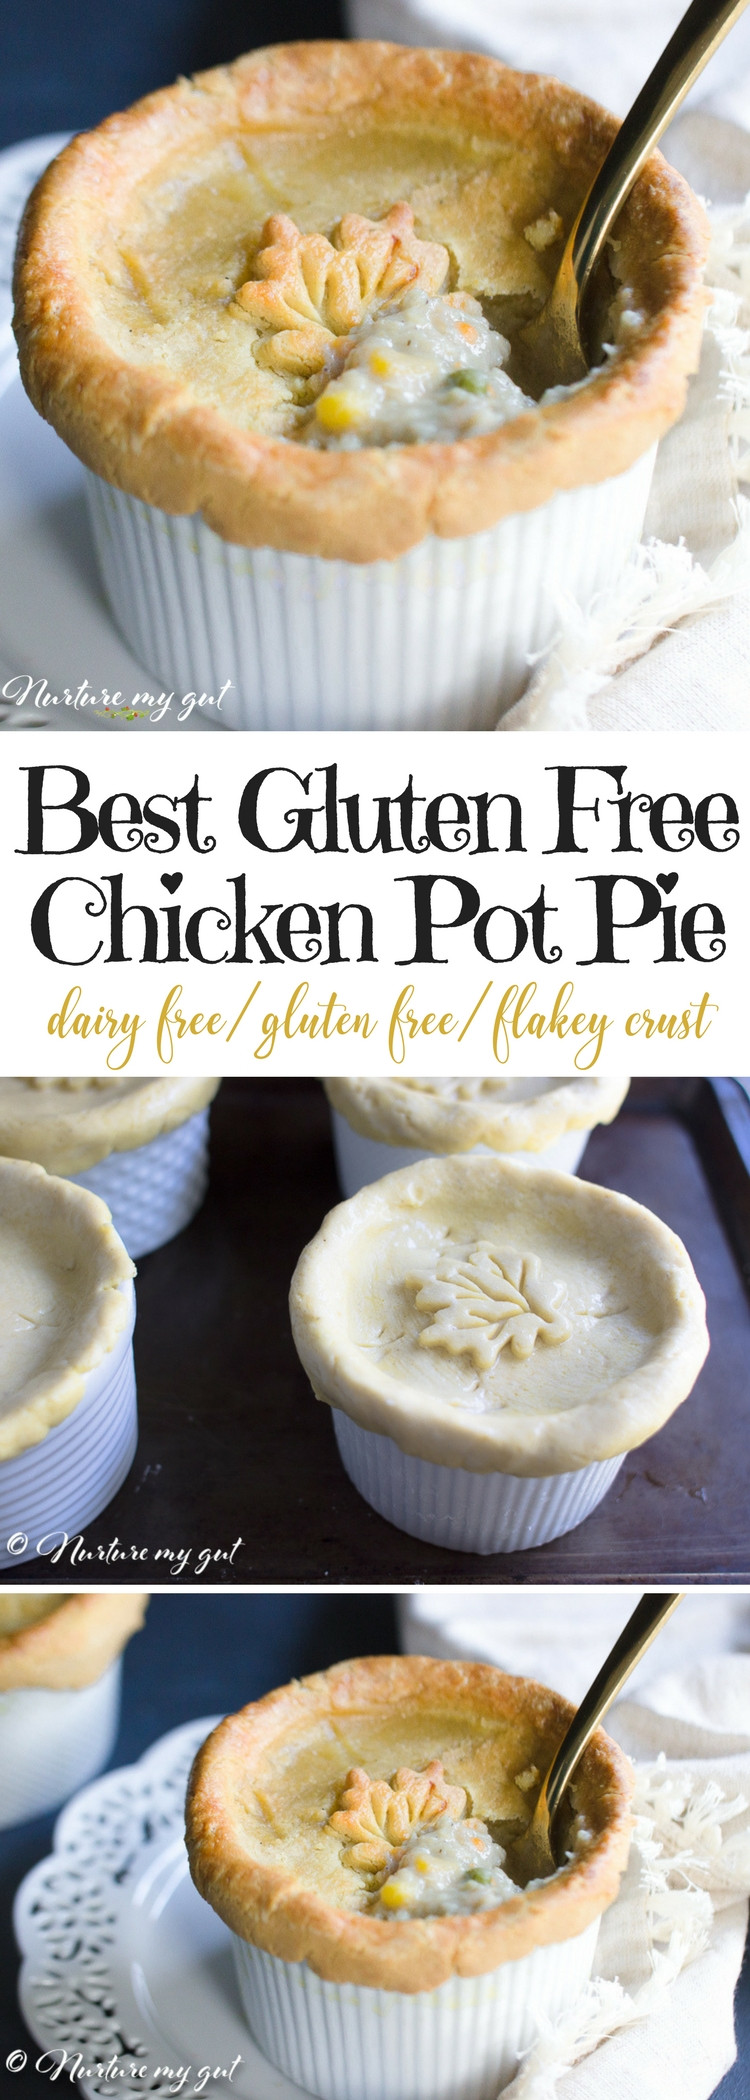 Chicken Pot Pie Dairy Free Best Gluten Free Chicken Pot Pie Recipe Dairy Free